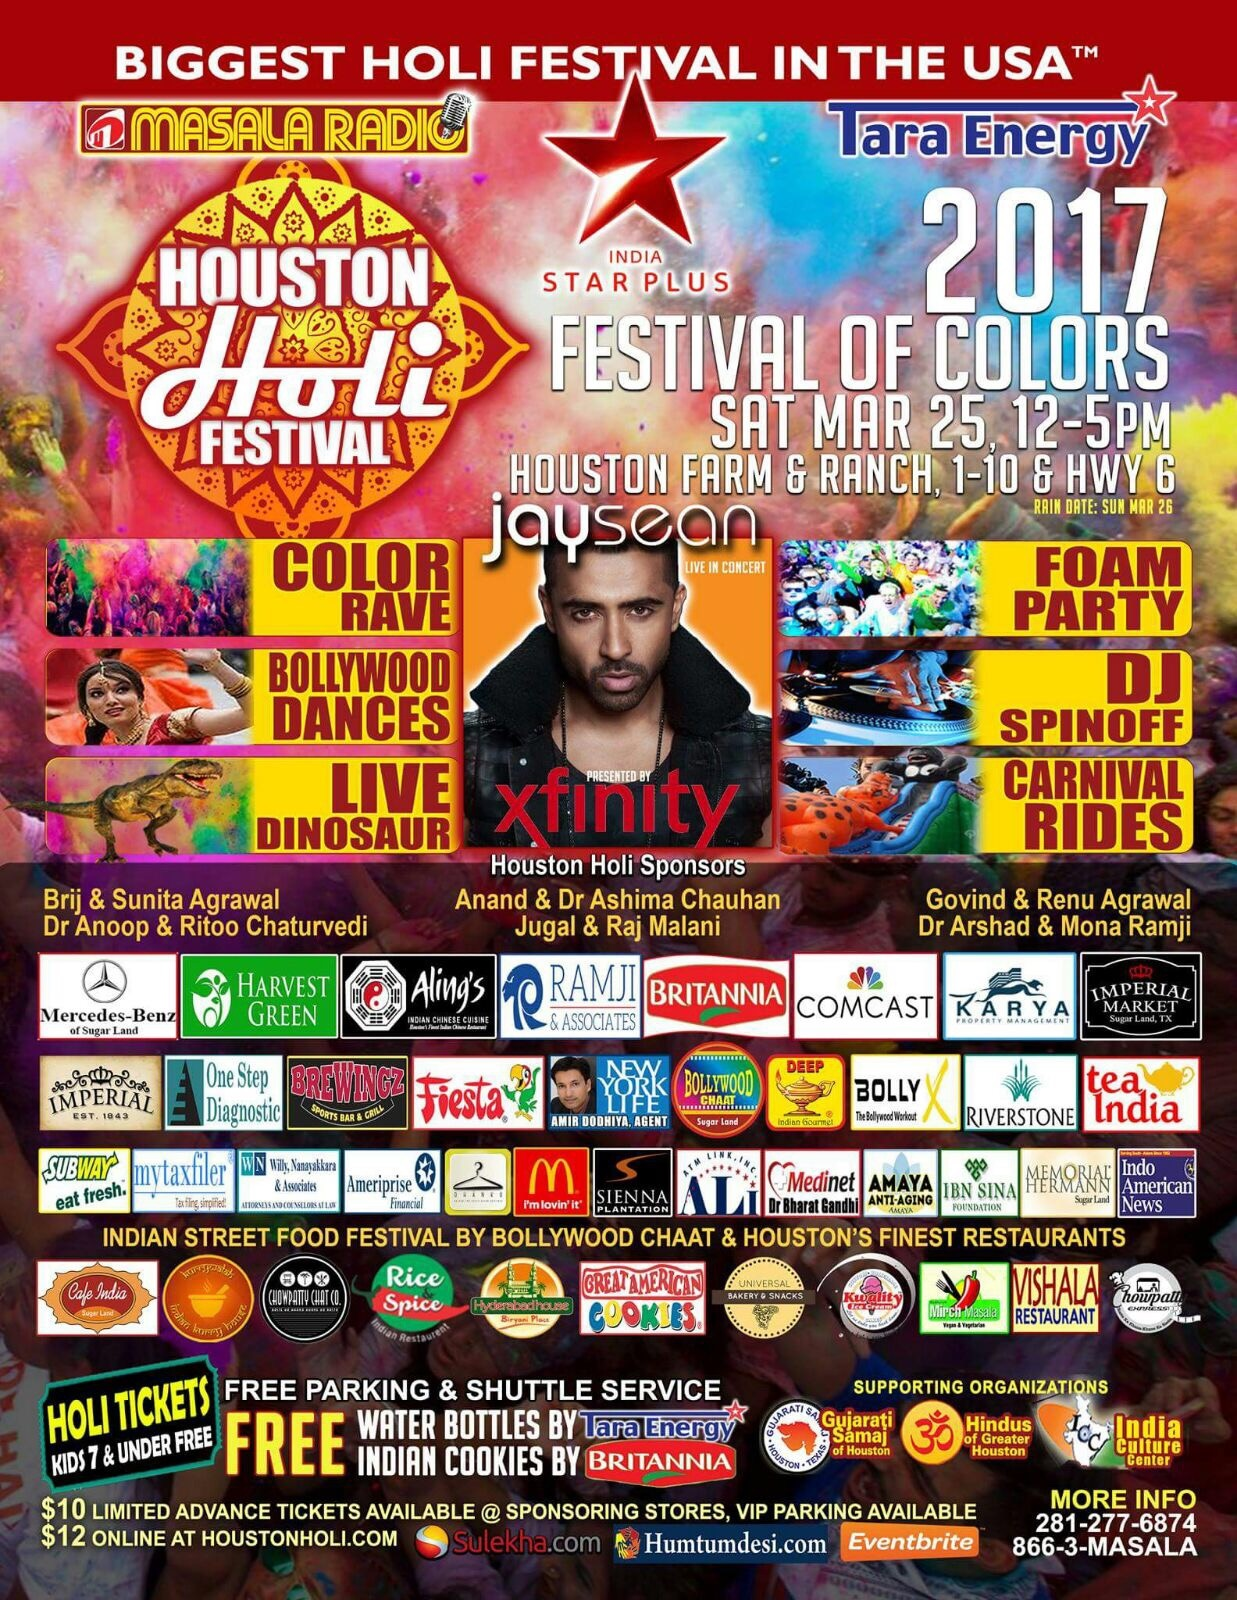 Holi (Festival of Colors) with UK artist Jay Sean live in concert: Sat. 3/25/17 @ Houston Farm & Ranch, 12-5pm